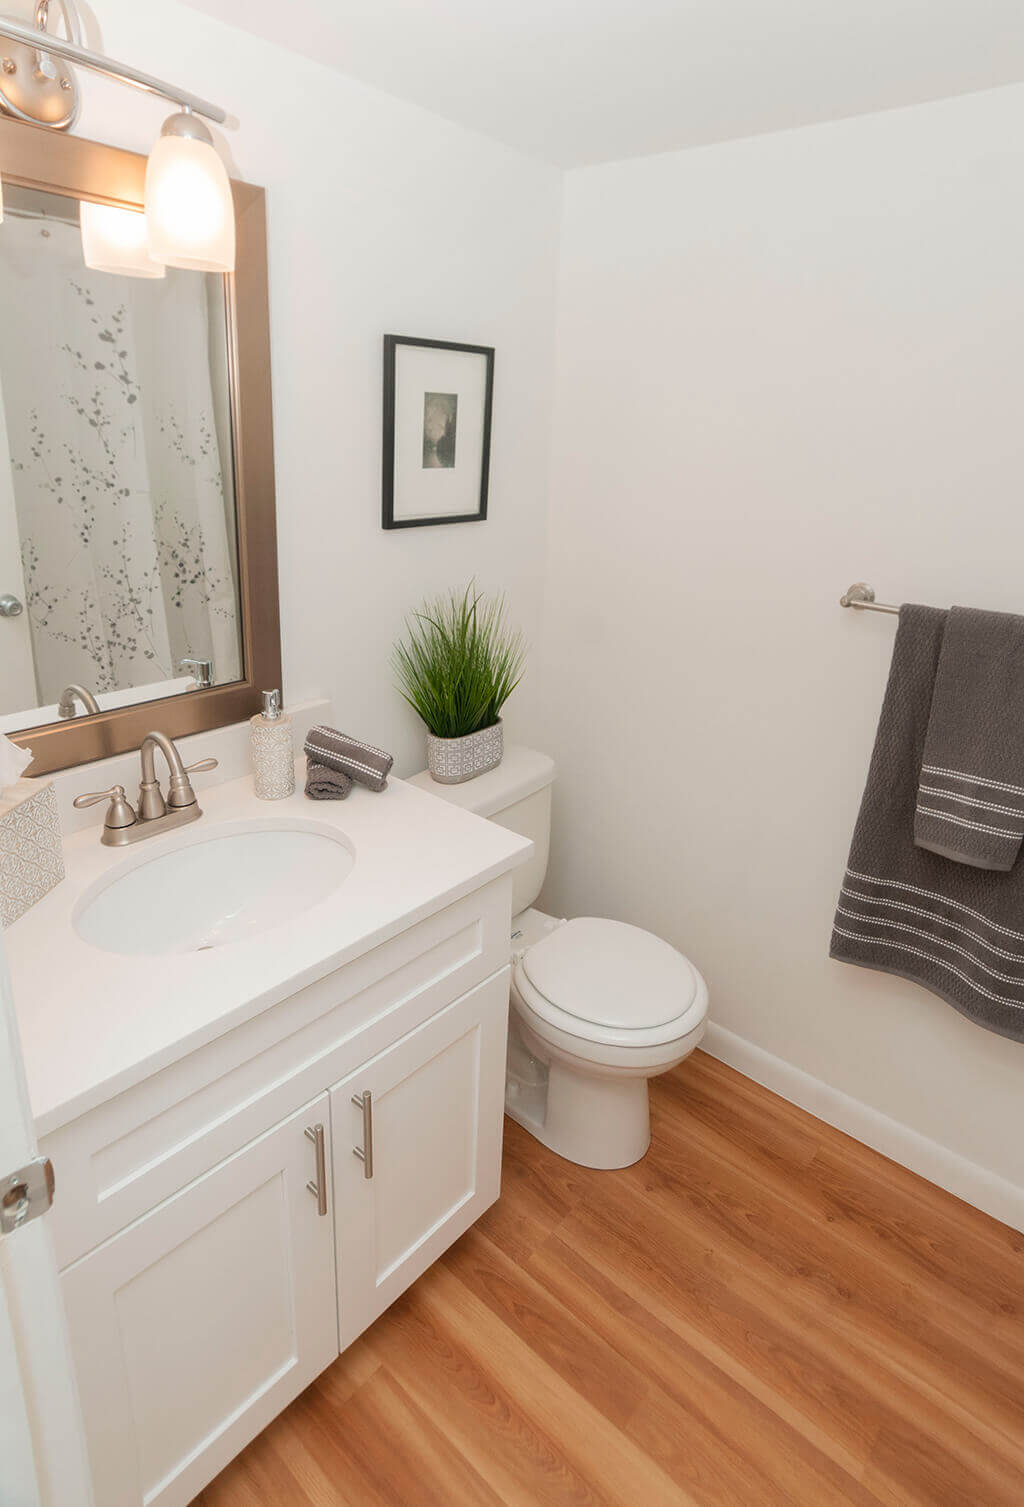 Renovated bathroom with white vanity cabinets